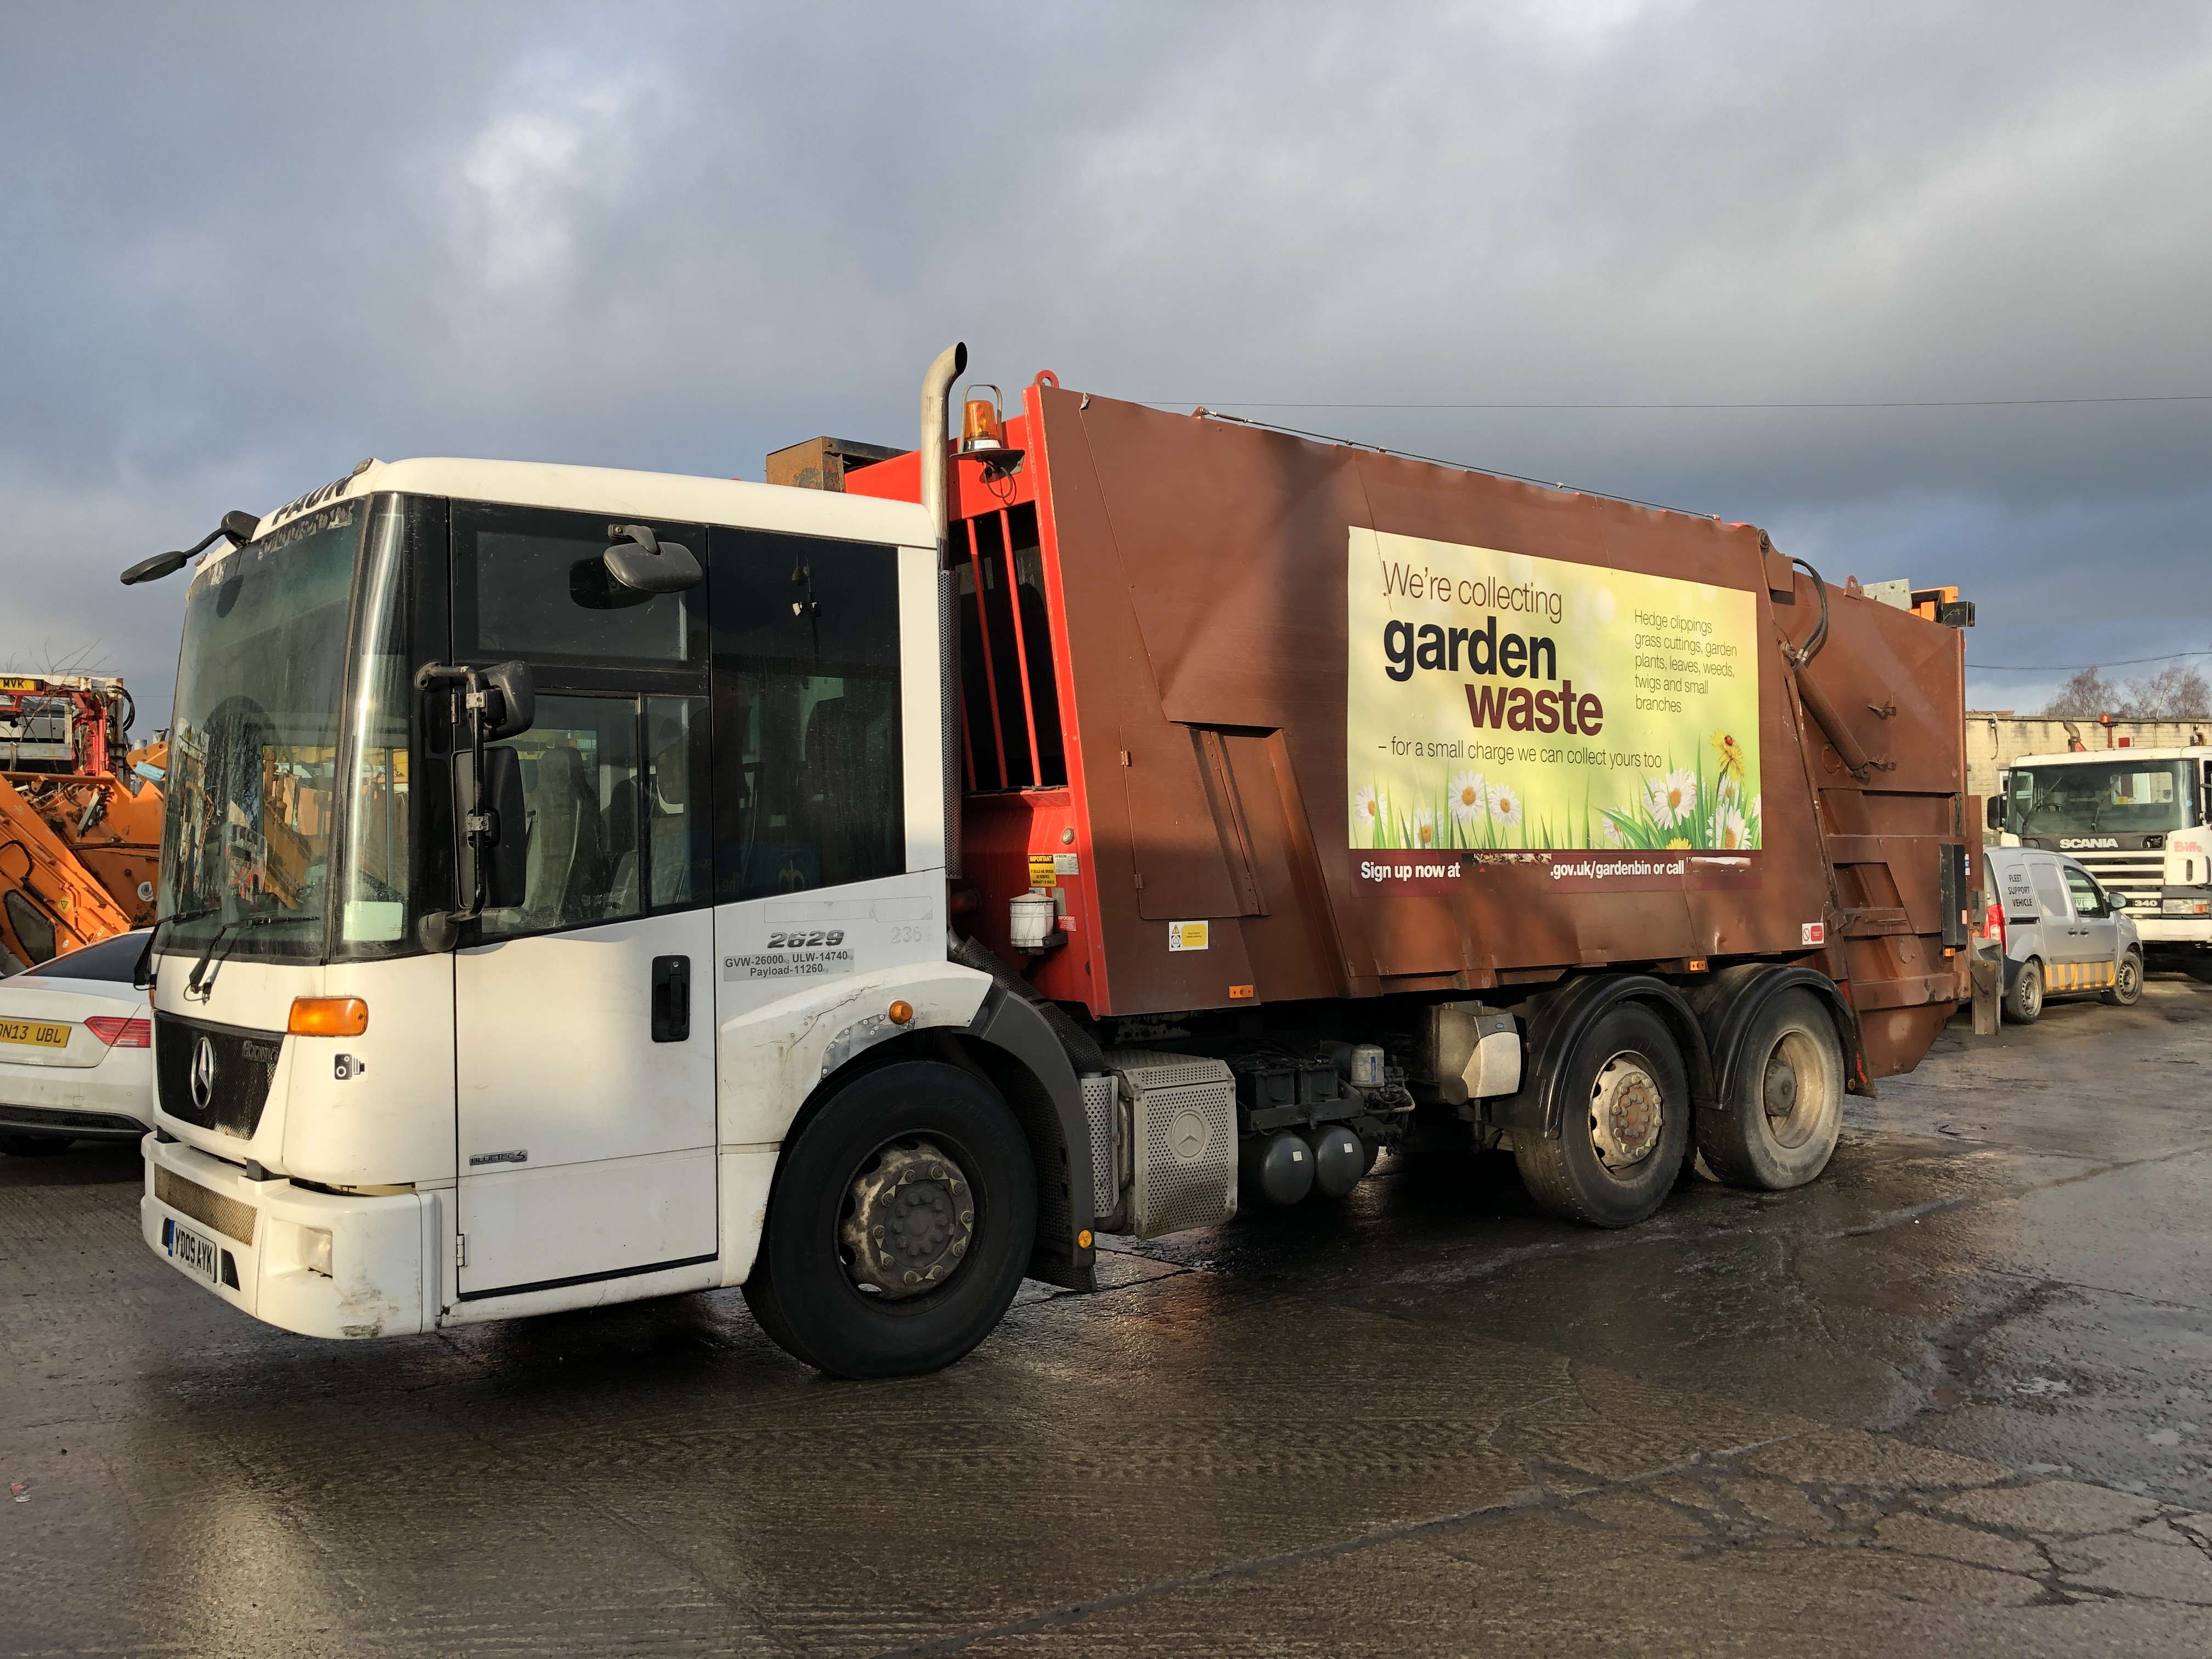 2009 Mercedes Econic 2629 6x2 dustcart for sale, Faun variopress body, Terberg binlift 8